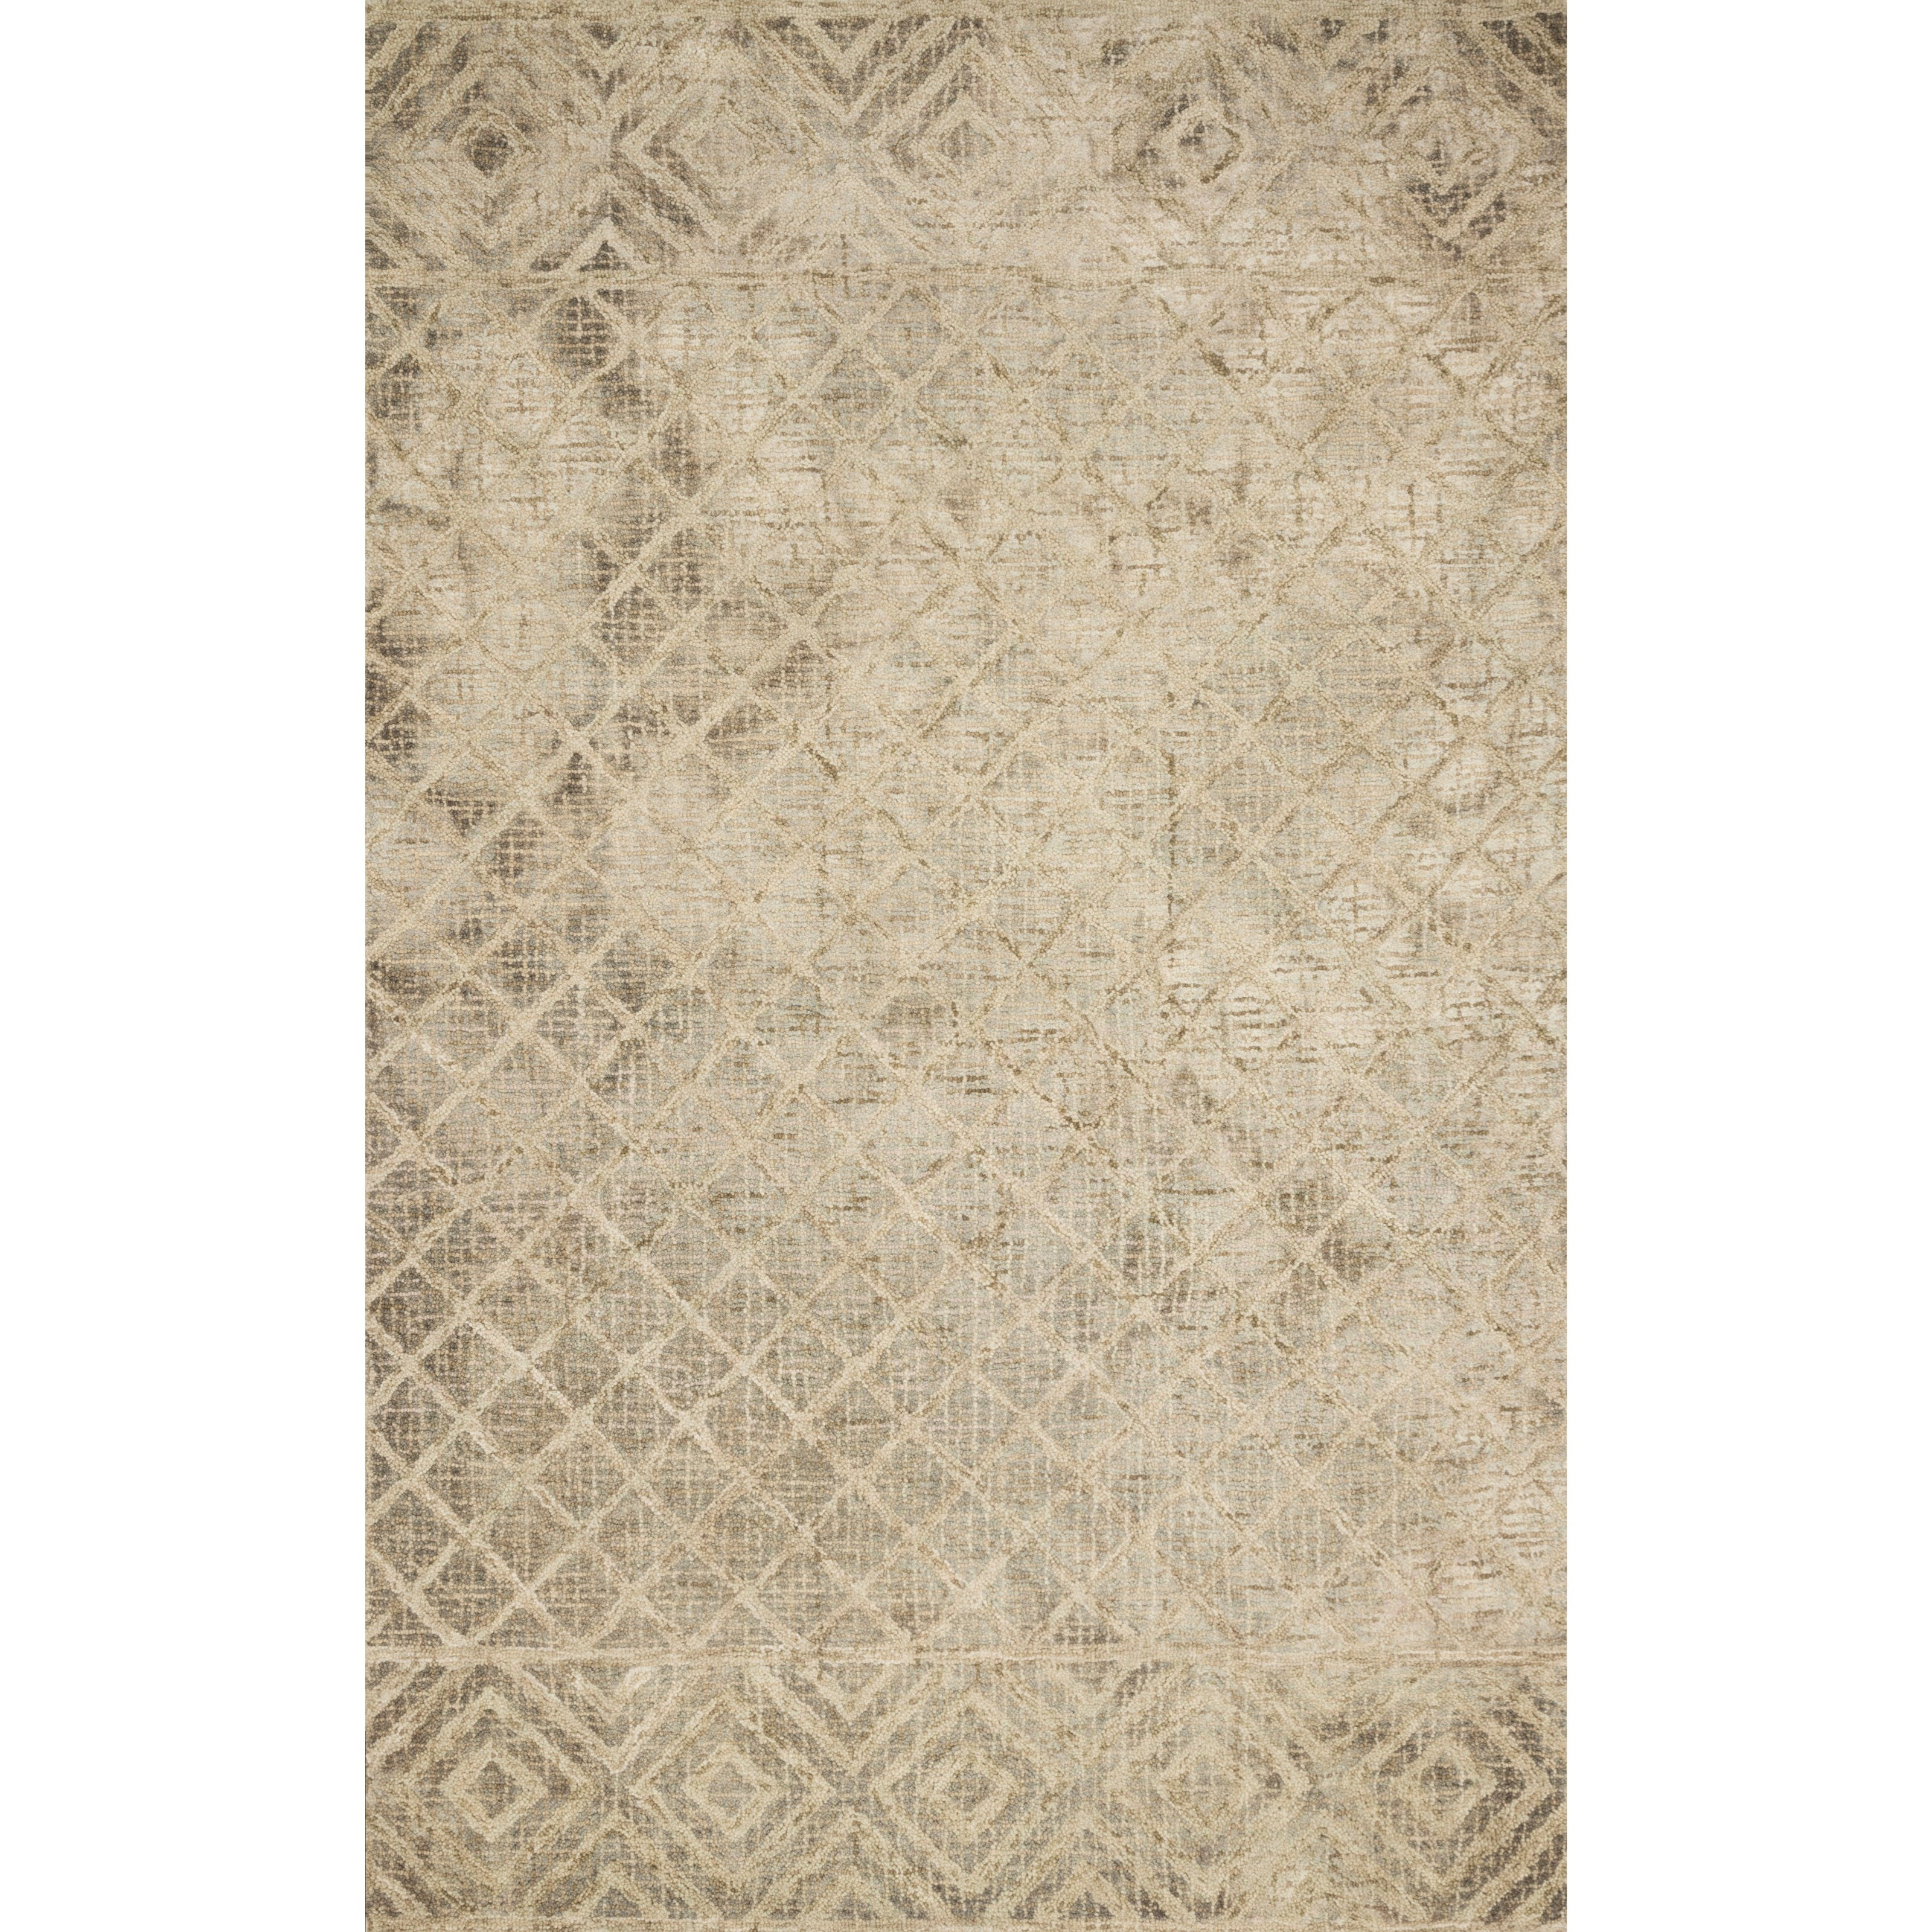 "Simone 5'0"" x 7'6"" Sand Rug by Loloi Rugs at Sprintz Furniture"